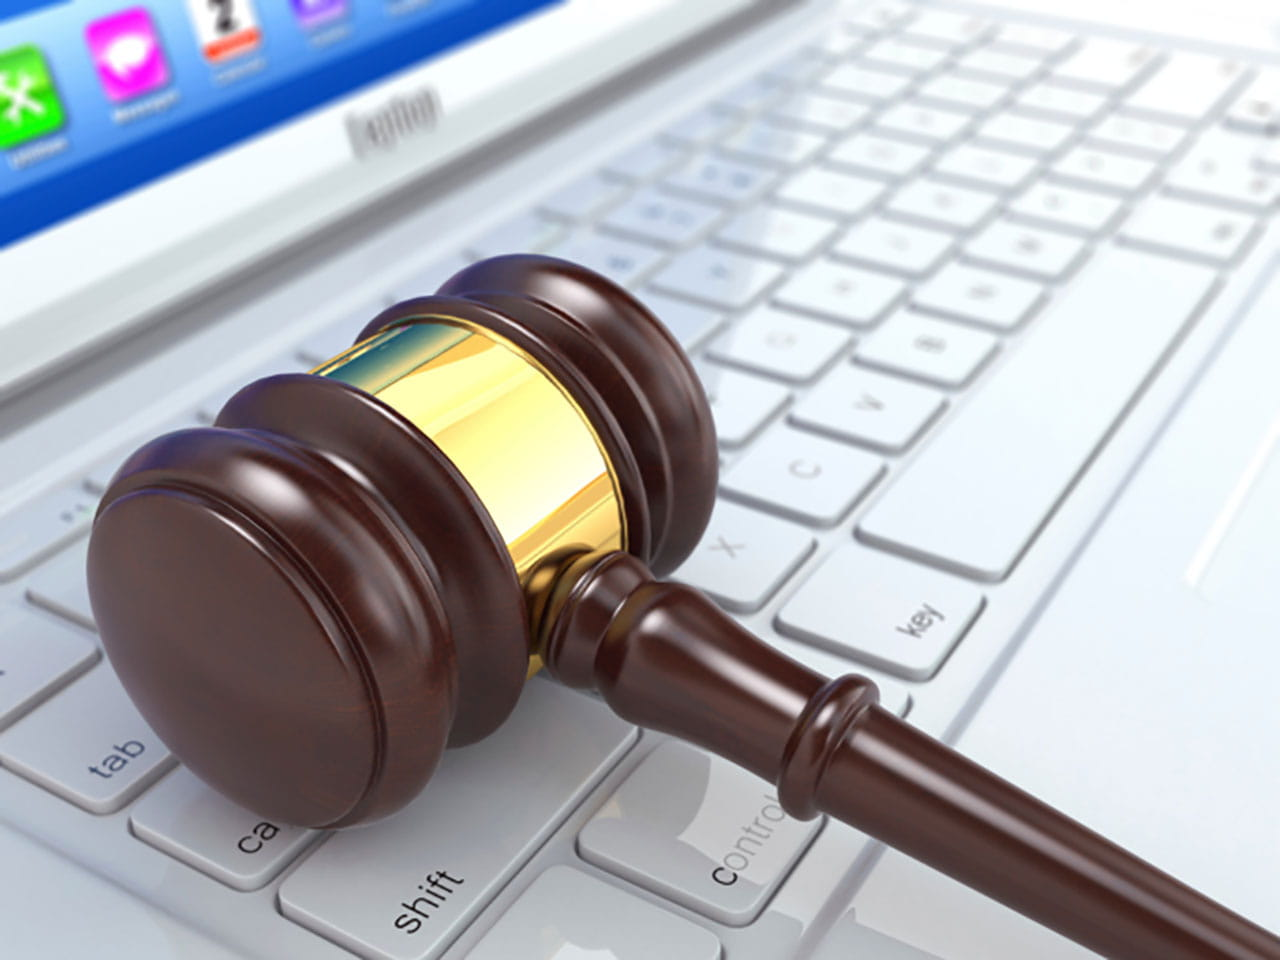 Auction gavel resting on a laptop